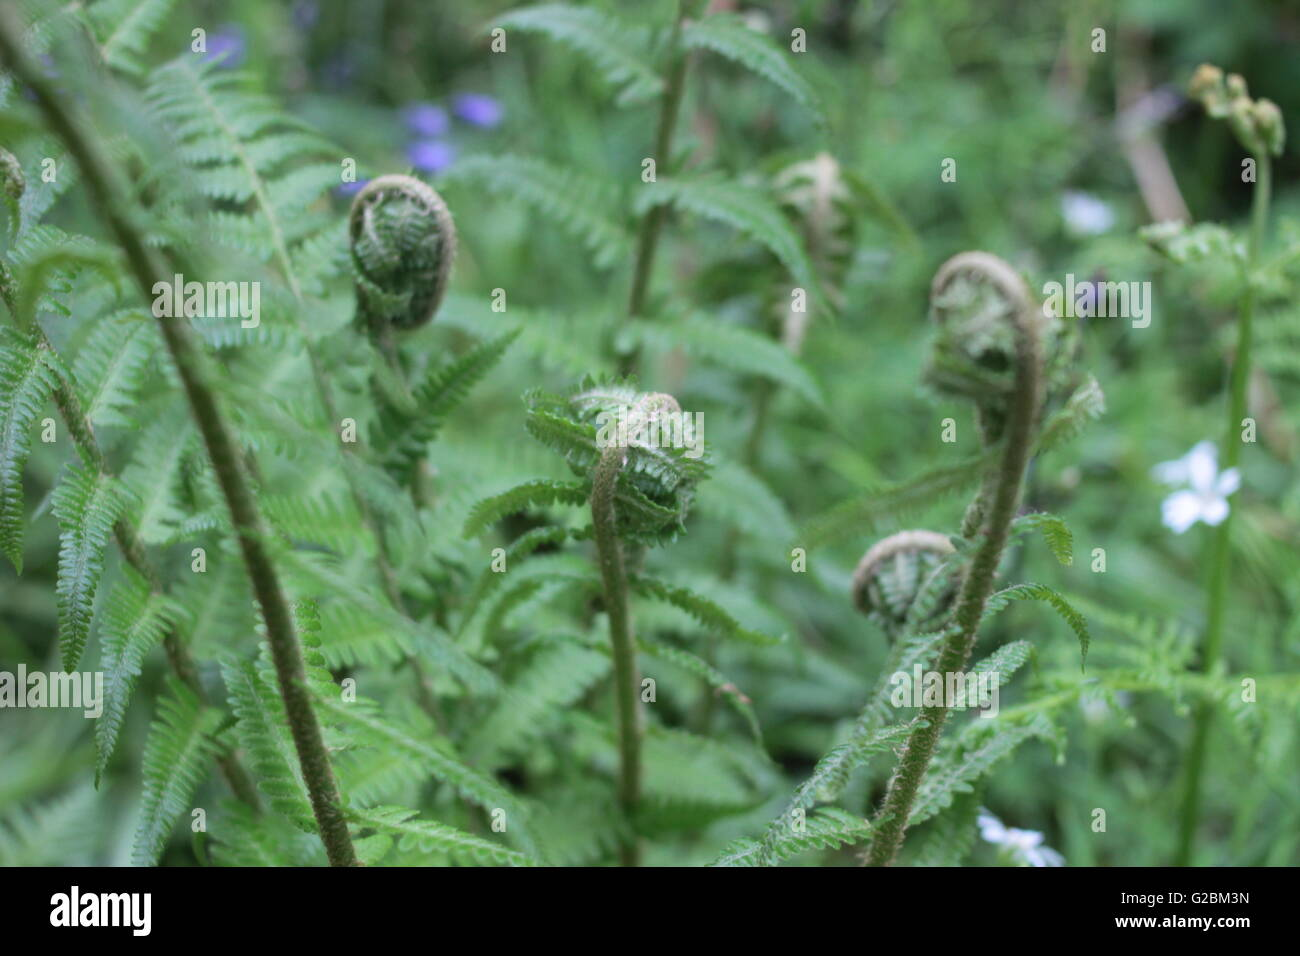 Wild curled fern leaves - Stock Image